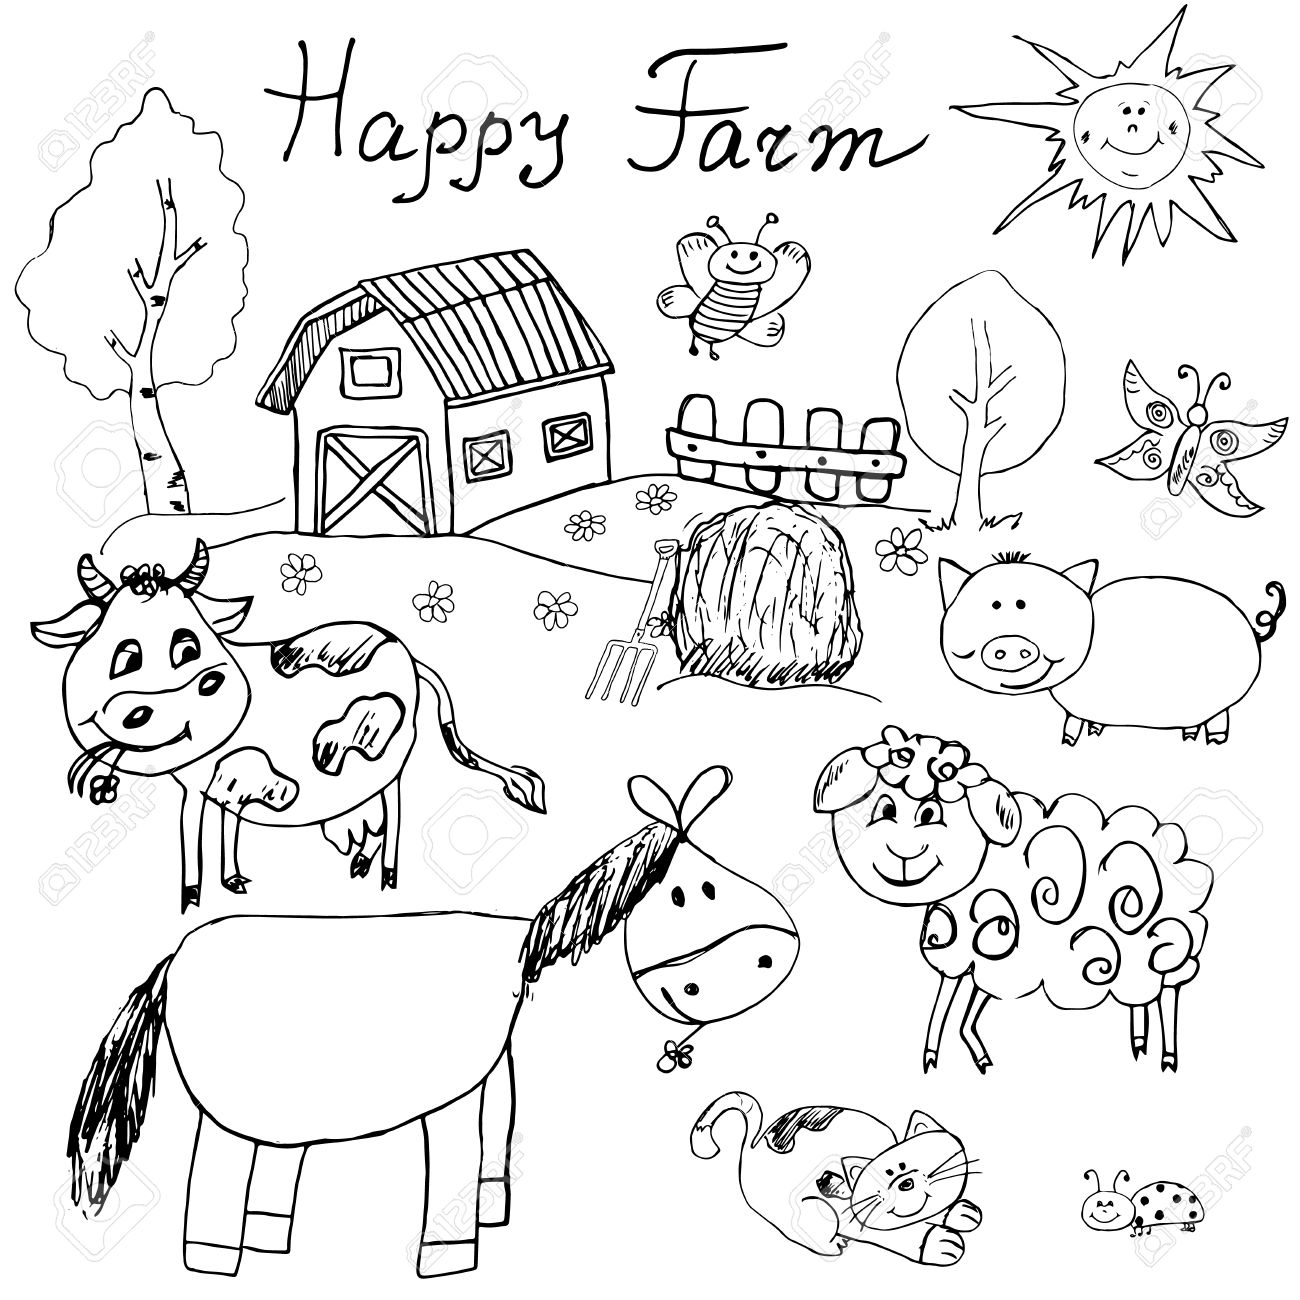 1300x1300 Happy Farm Doodles Icons Set. Hand Drawn Sketch With Horse, Cow